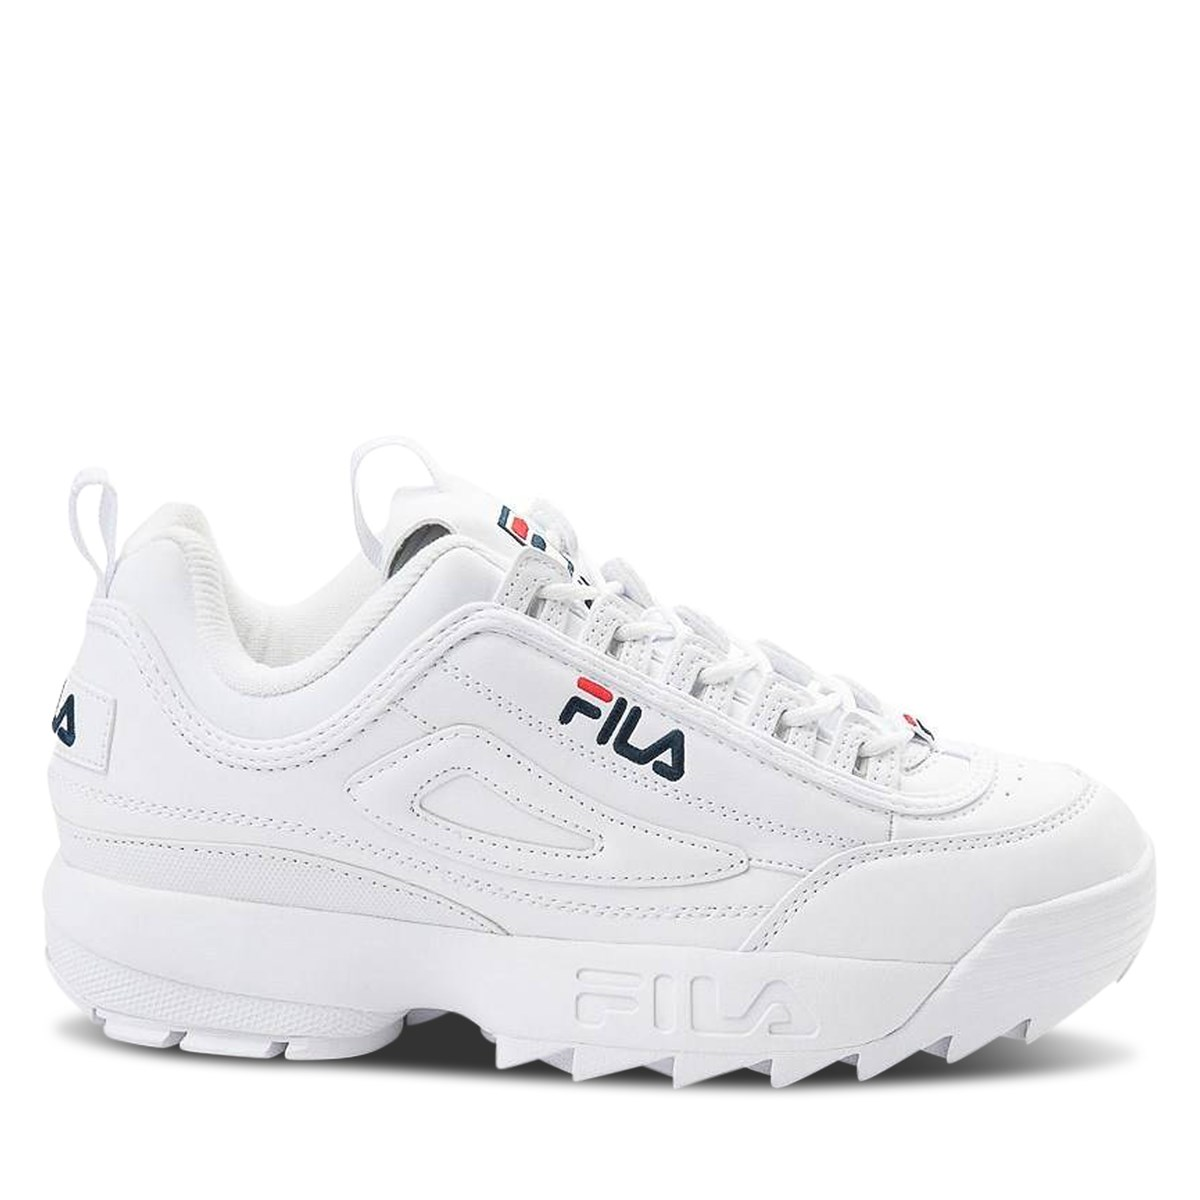 Men's Disruptor II Premium Sneakers in White